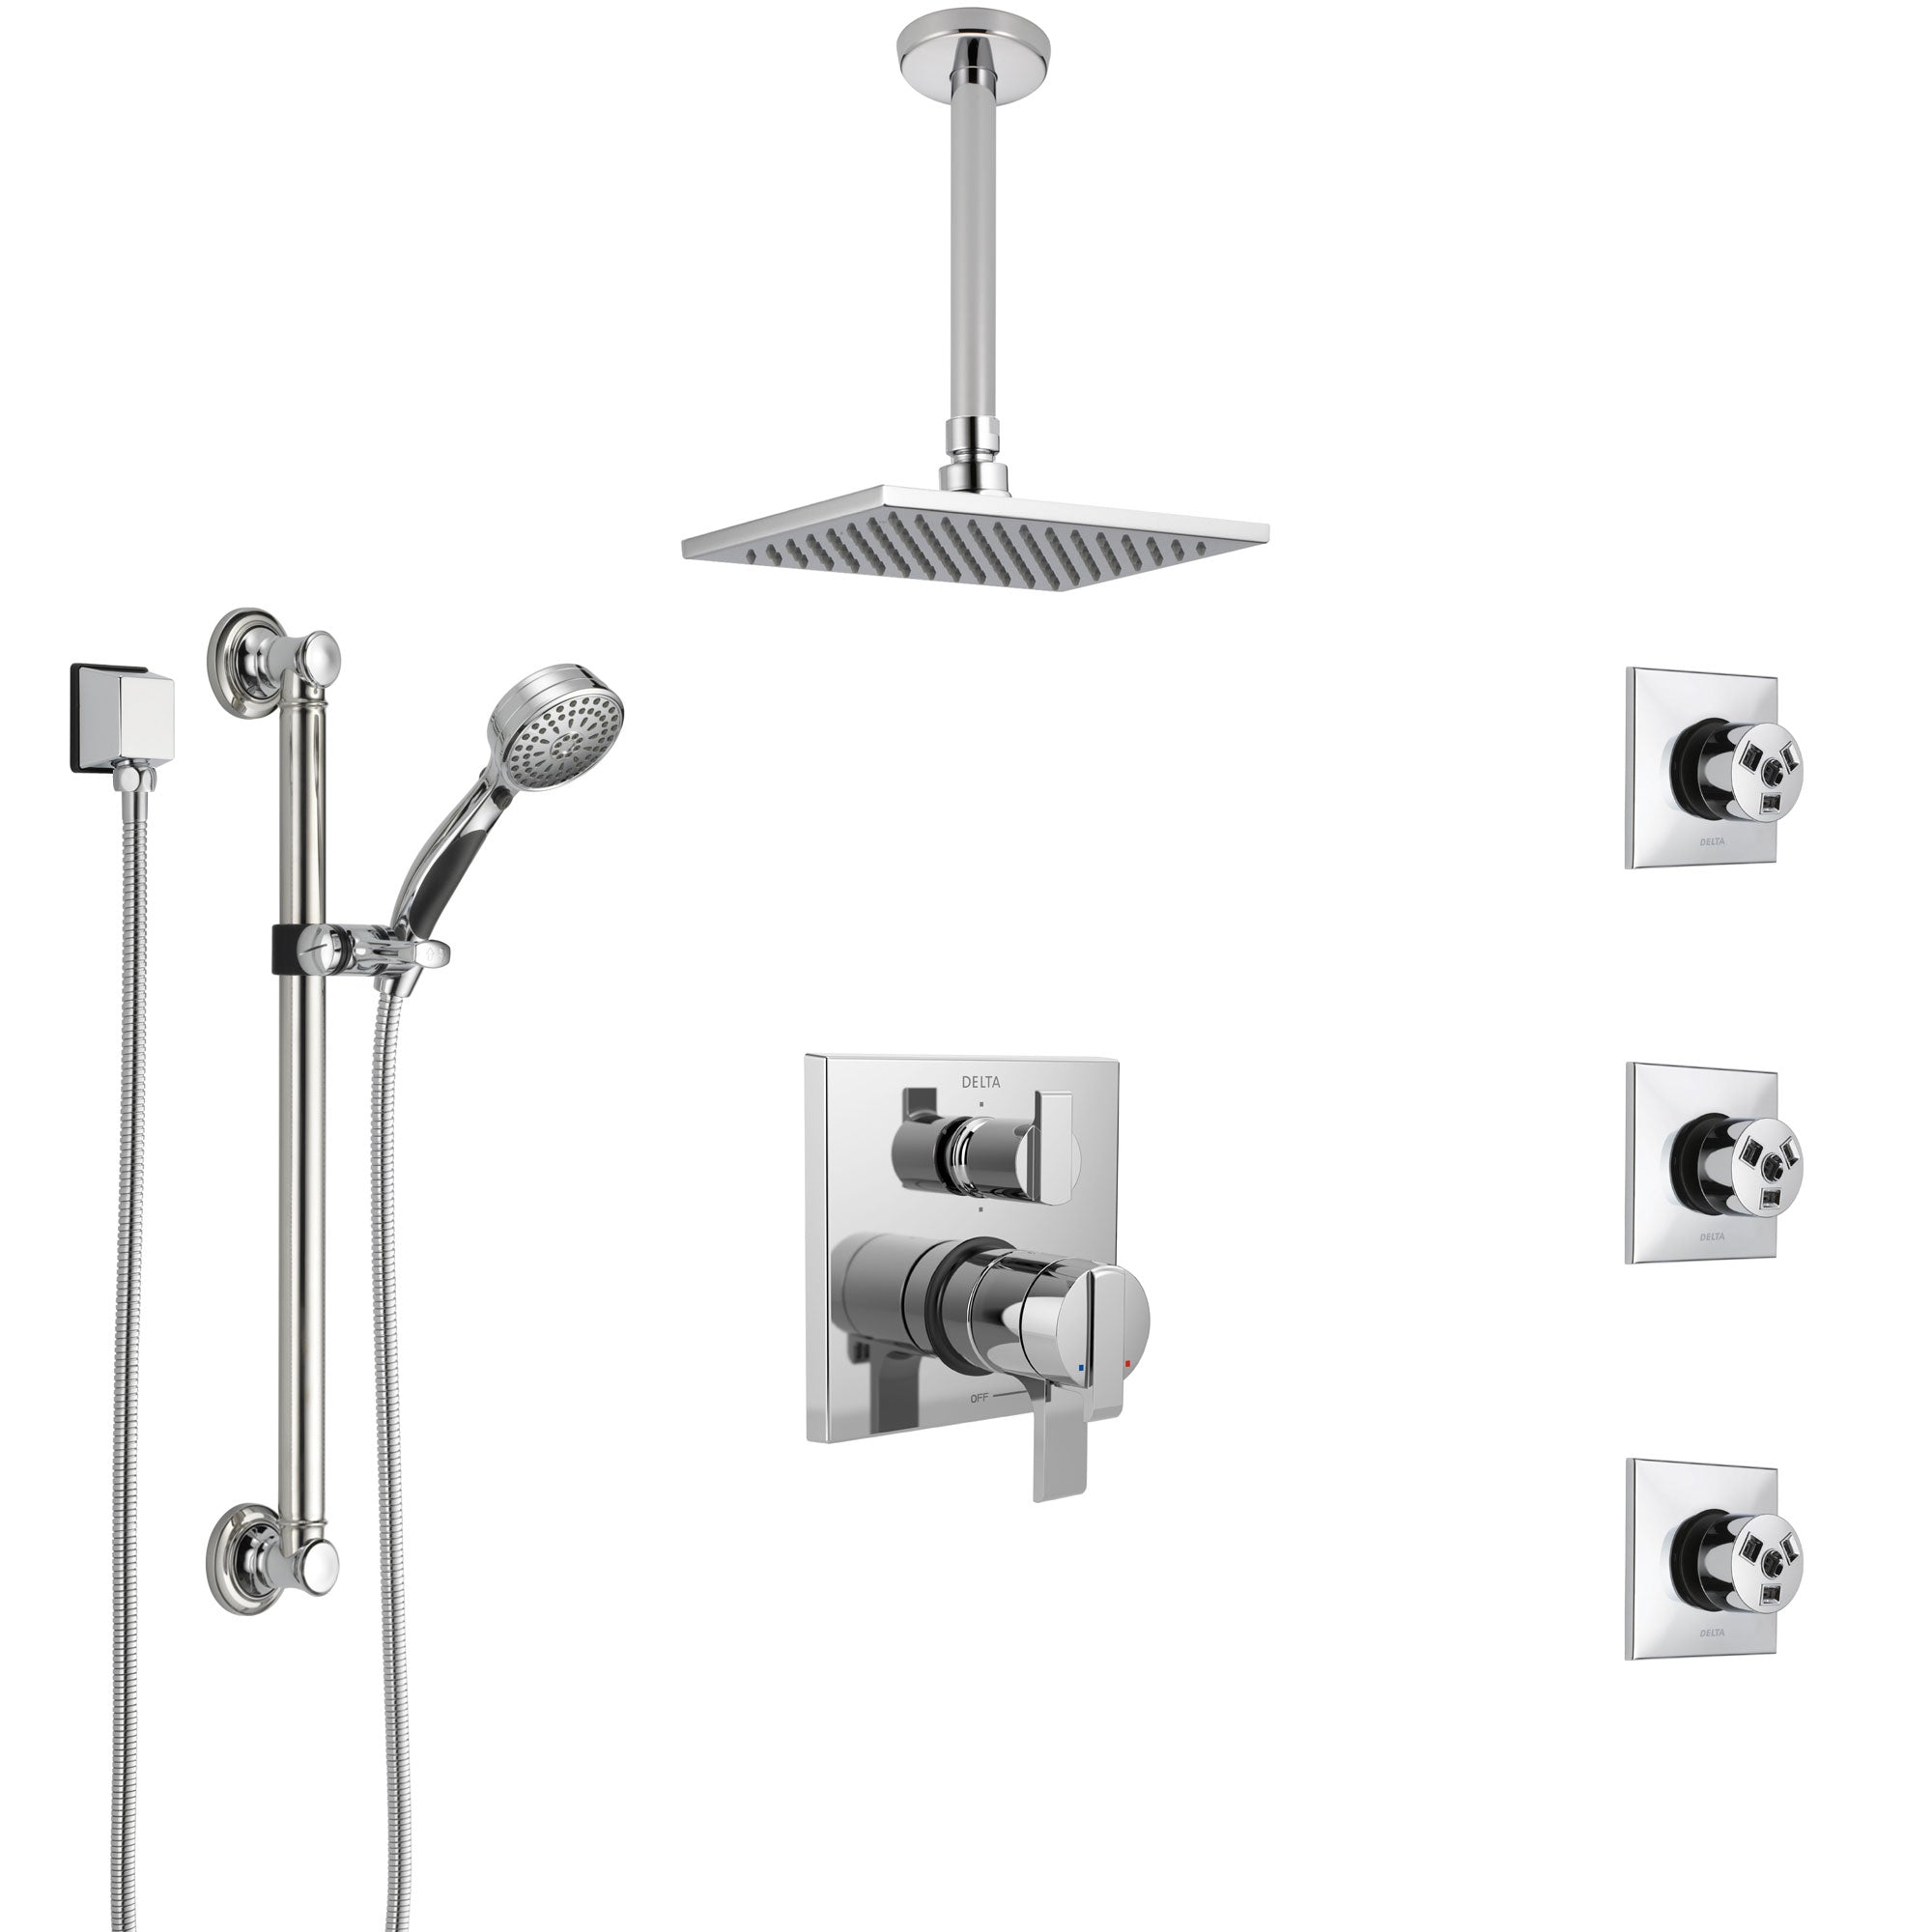 Delta Ara Chrome Shower System with Dual Control Handle, Integrated Diverter, Ceiling Showerhead, 3 Body Sprays, and Grab Bar Hand Shower SS279679